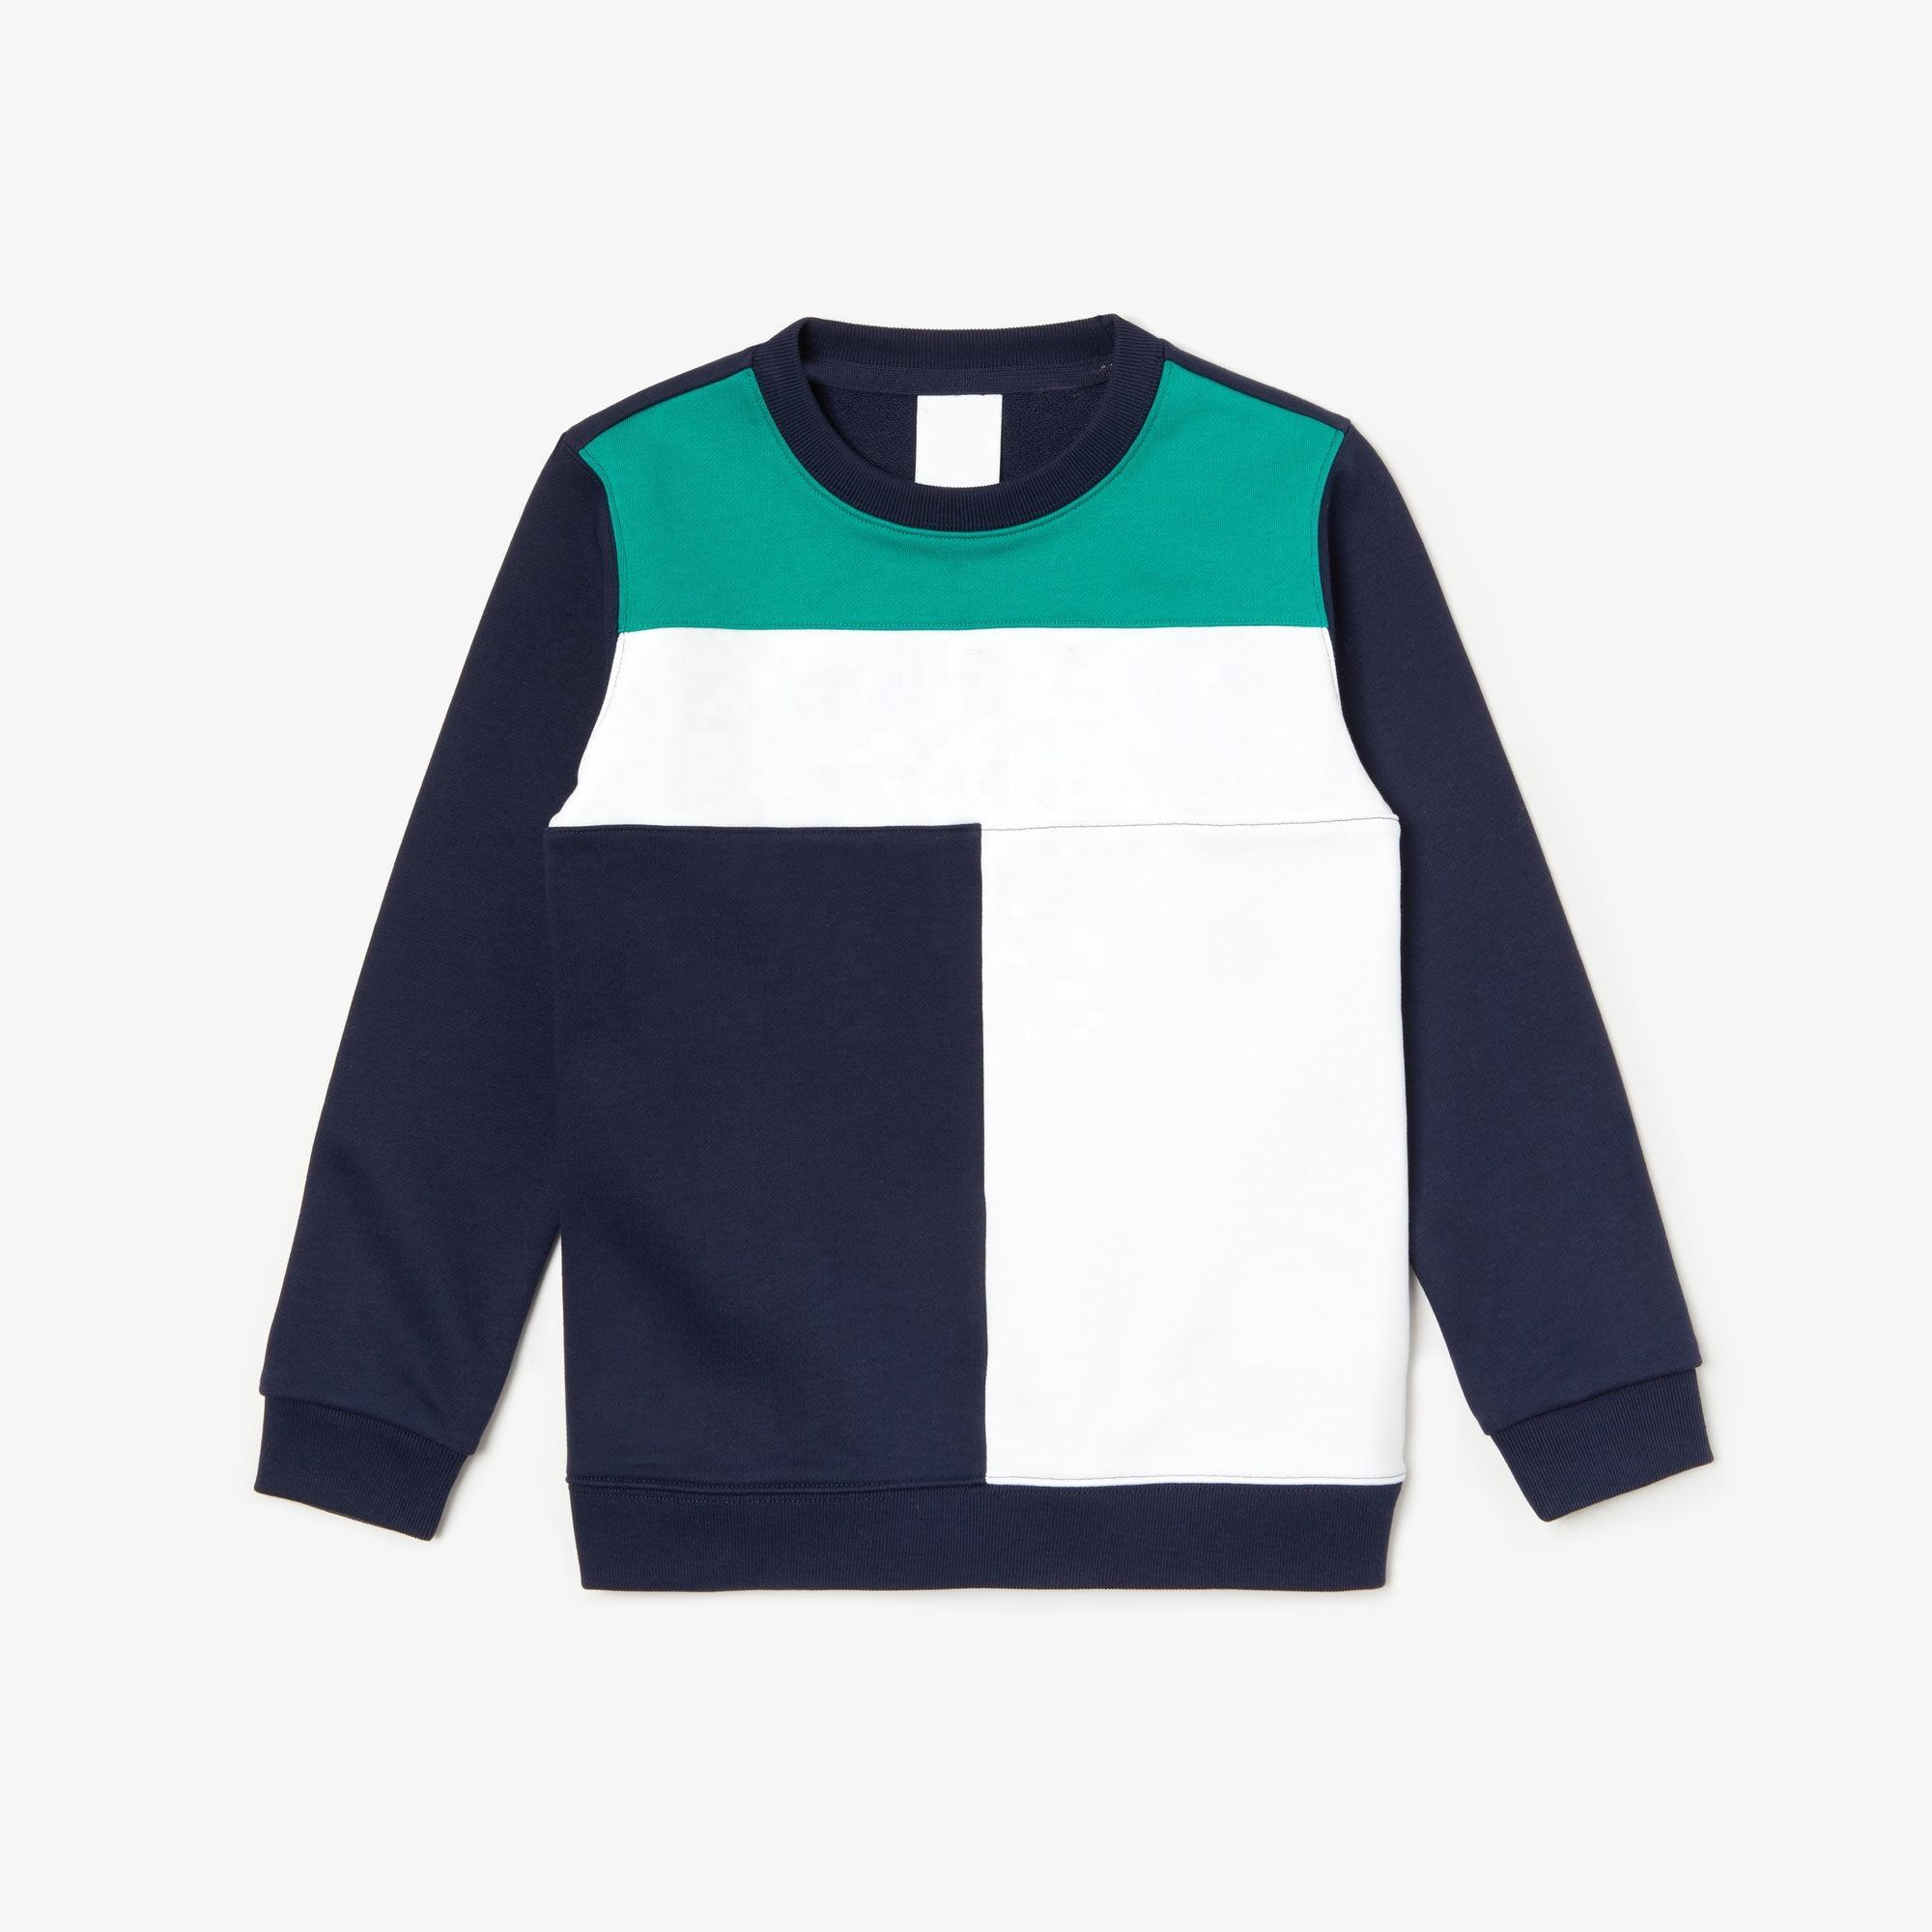 Custom made kids sweatshirt wholesale color block hoodies and sweatshirt for children